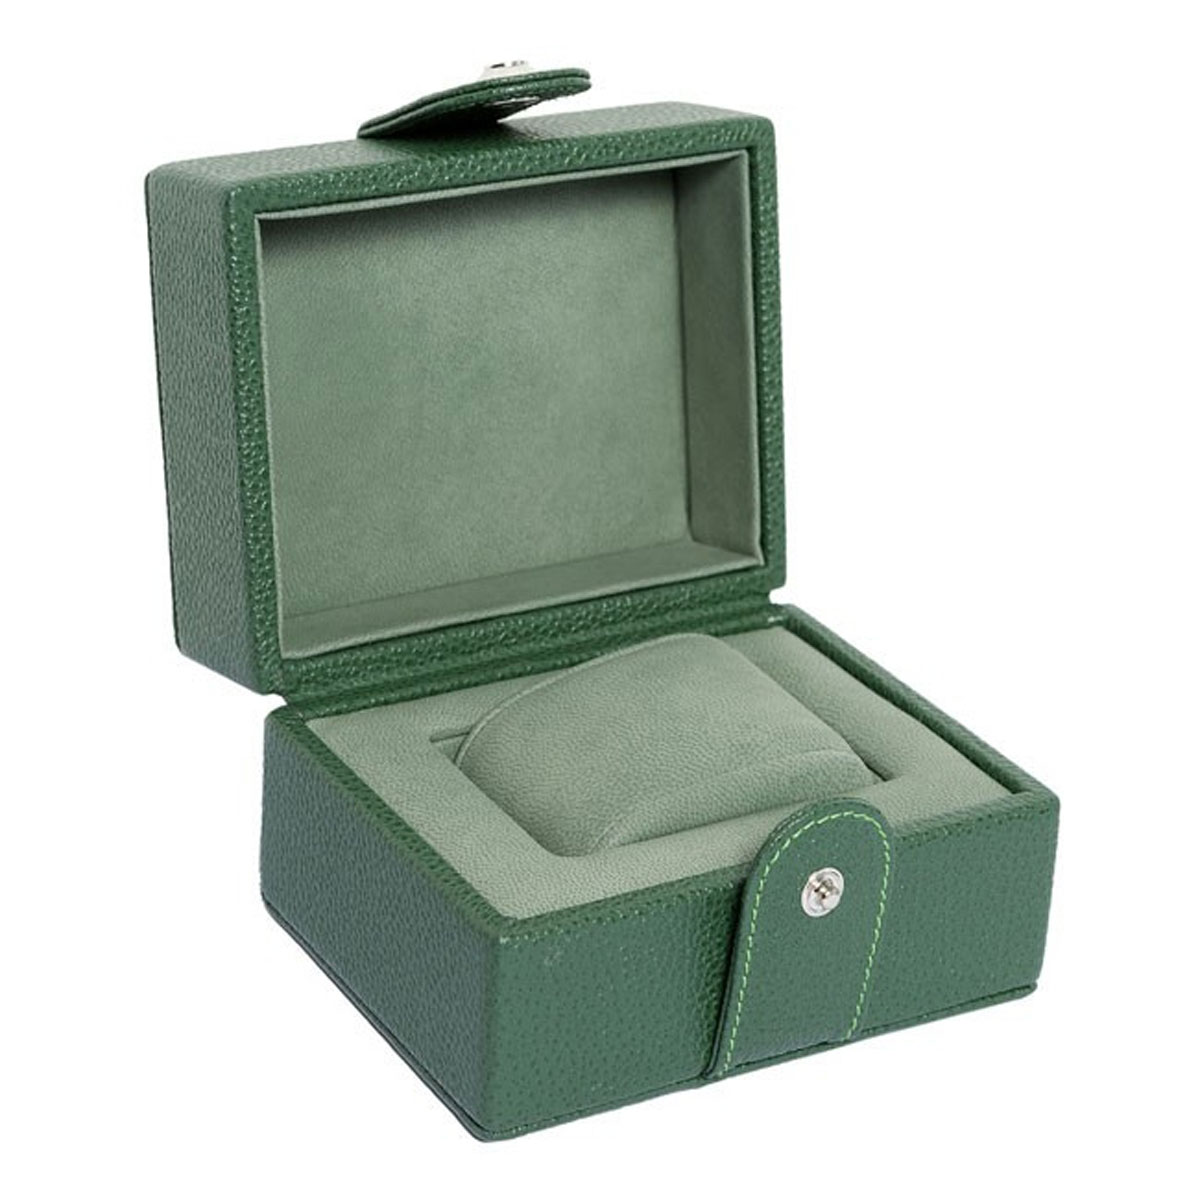 Underwood Green Leather Single Large Watch Storage Box